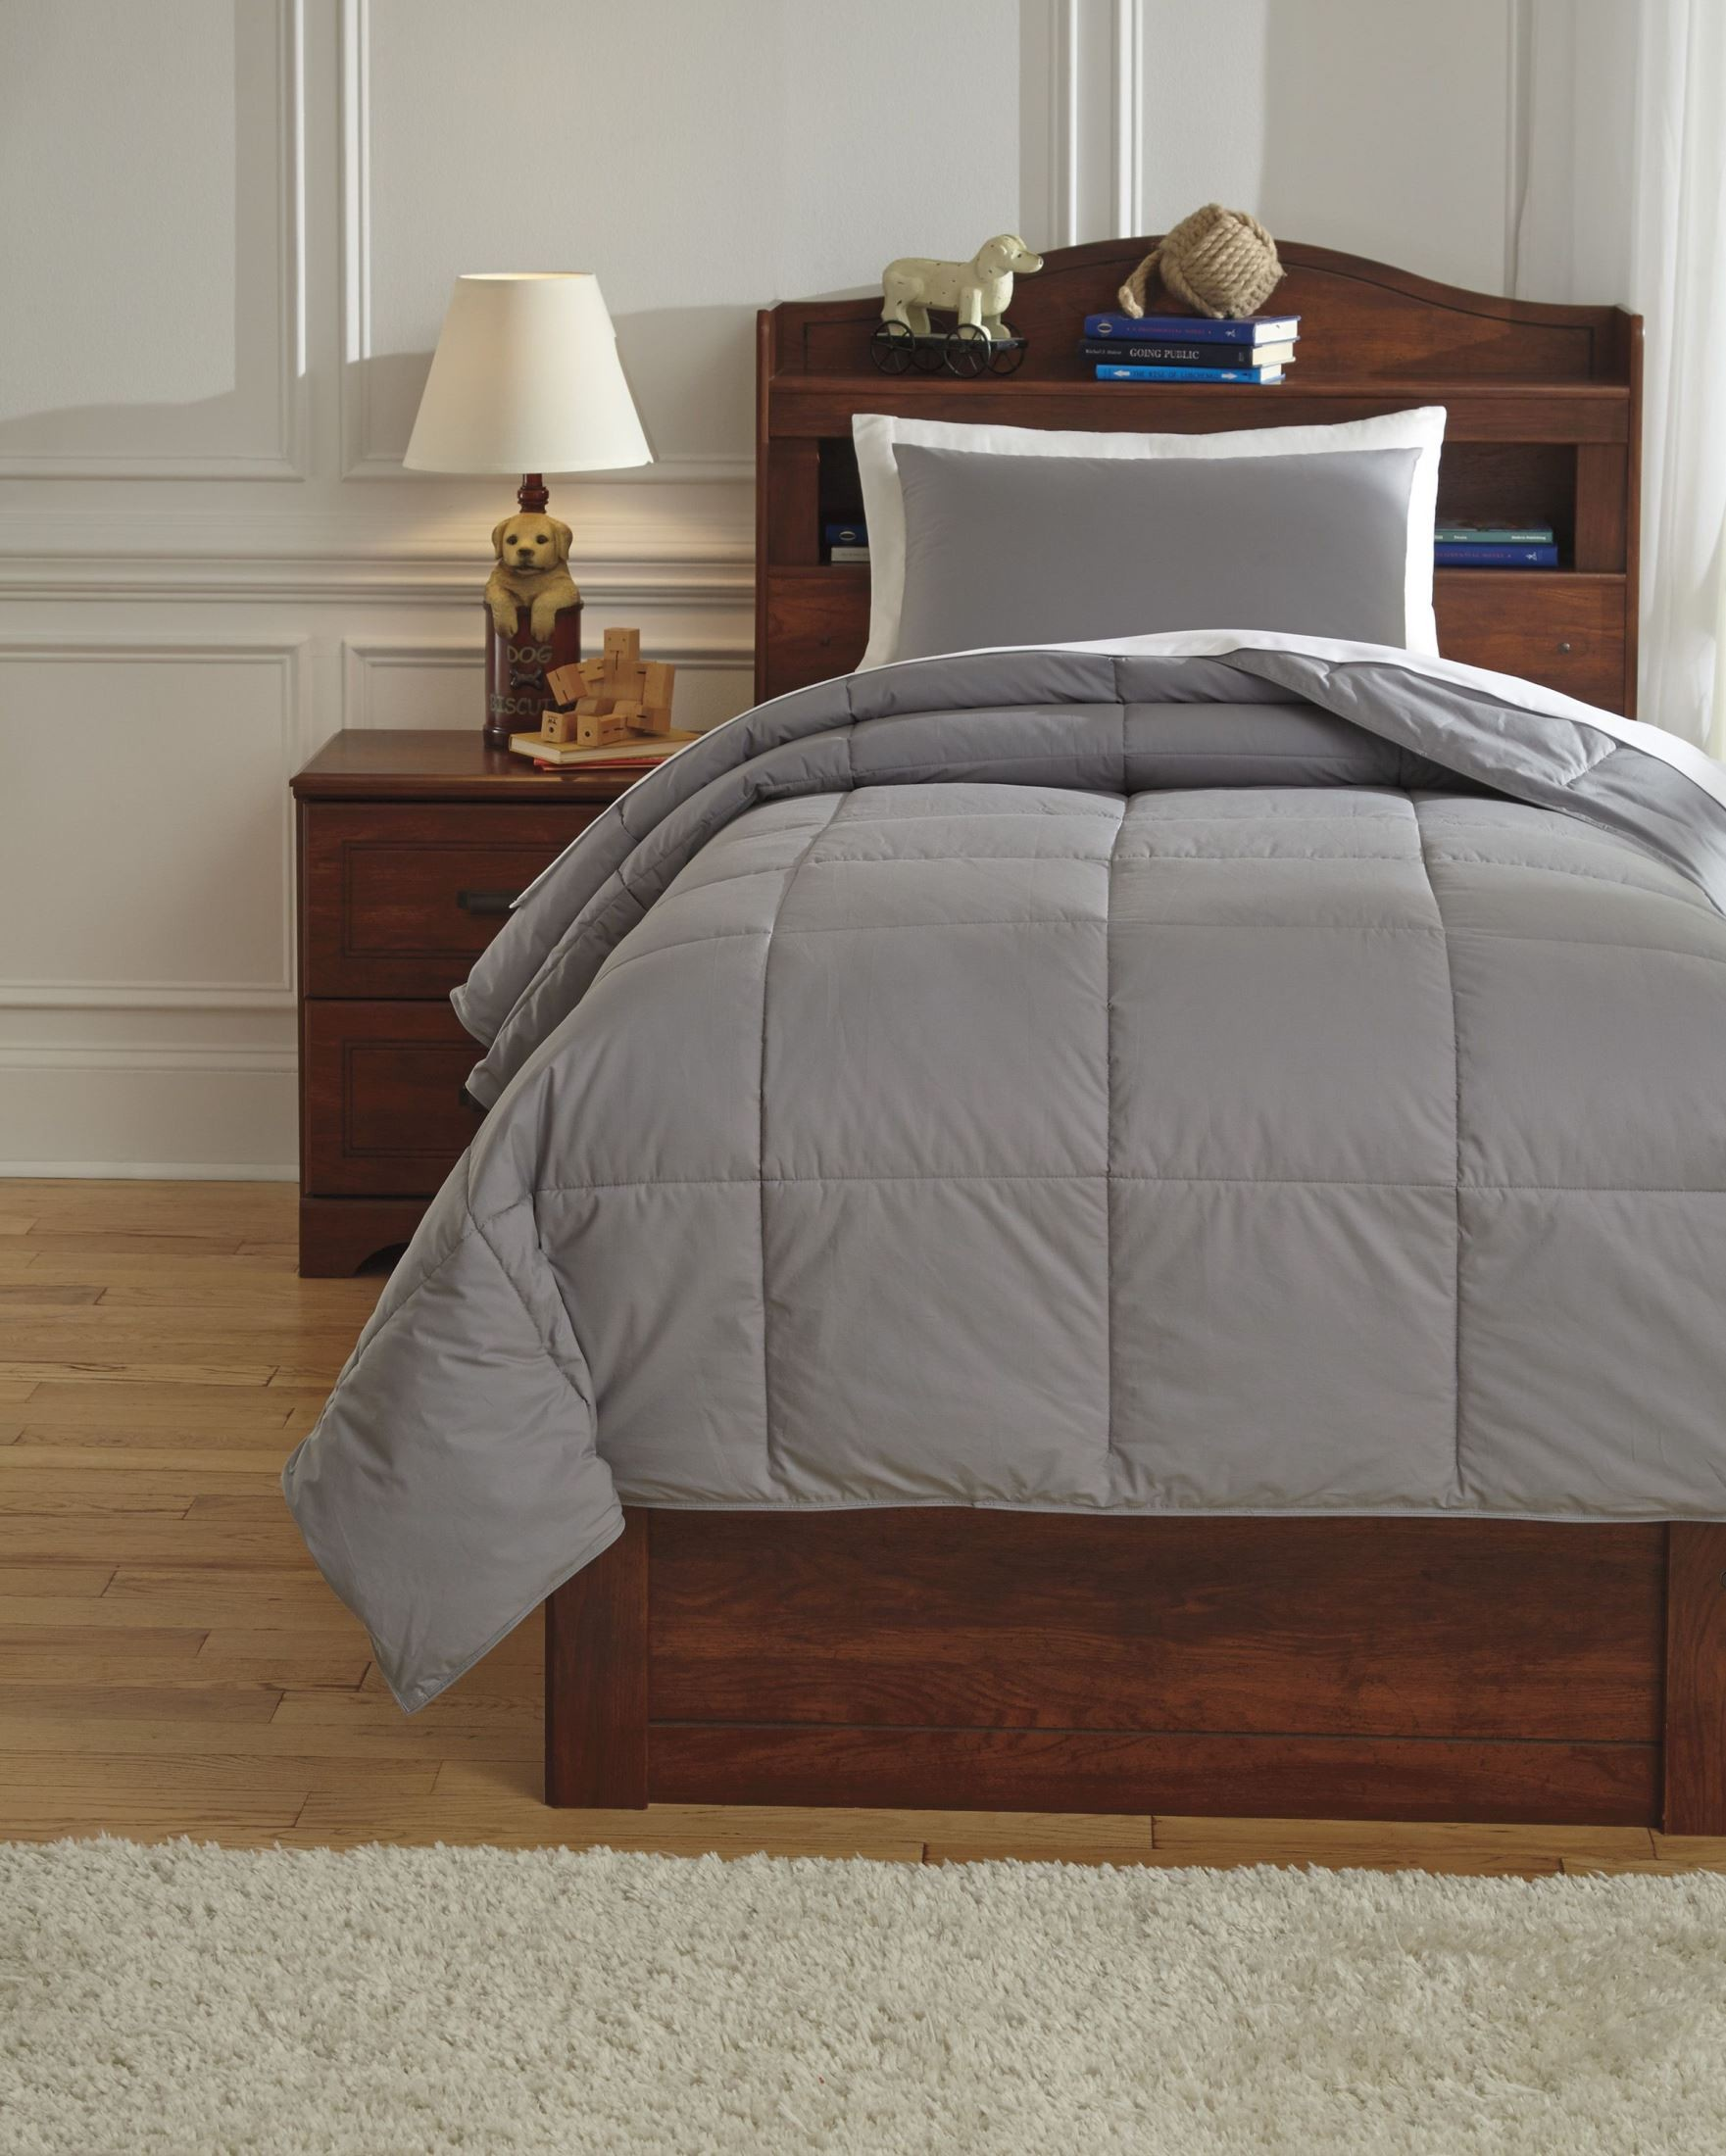 Gray Double Comforter : Plainfield gray twin comforter set from ashley q t